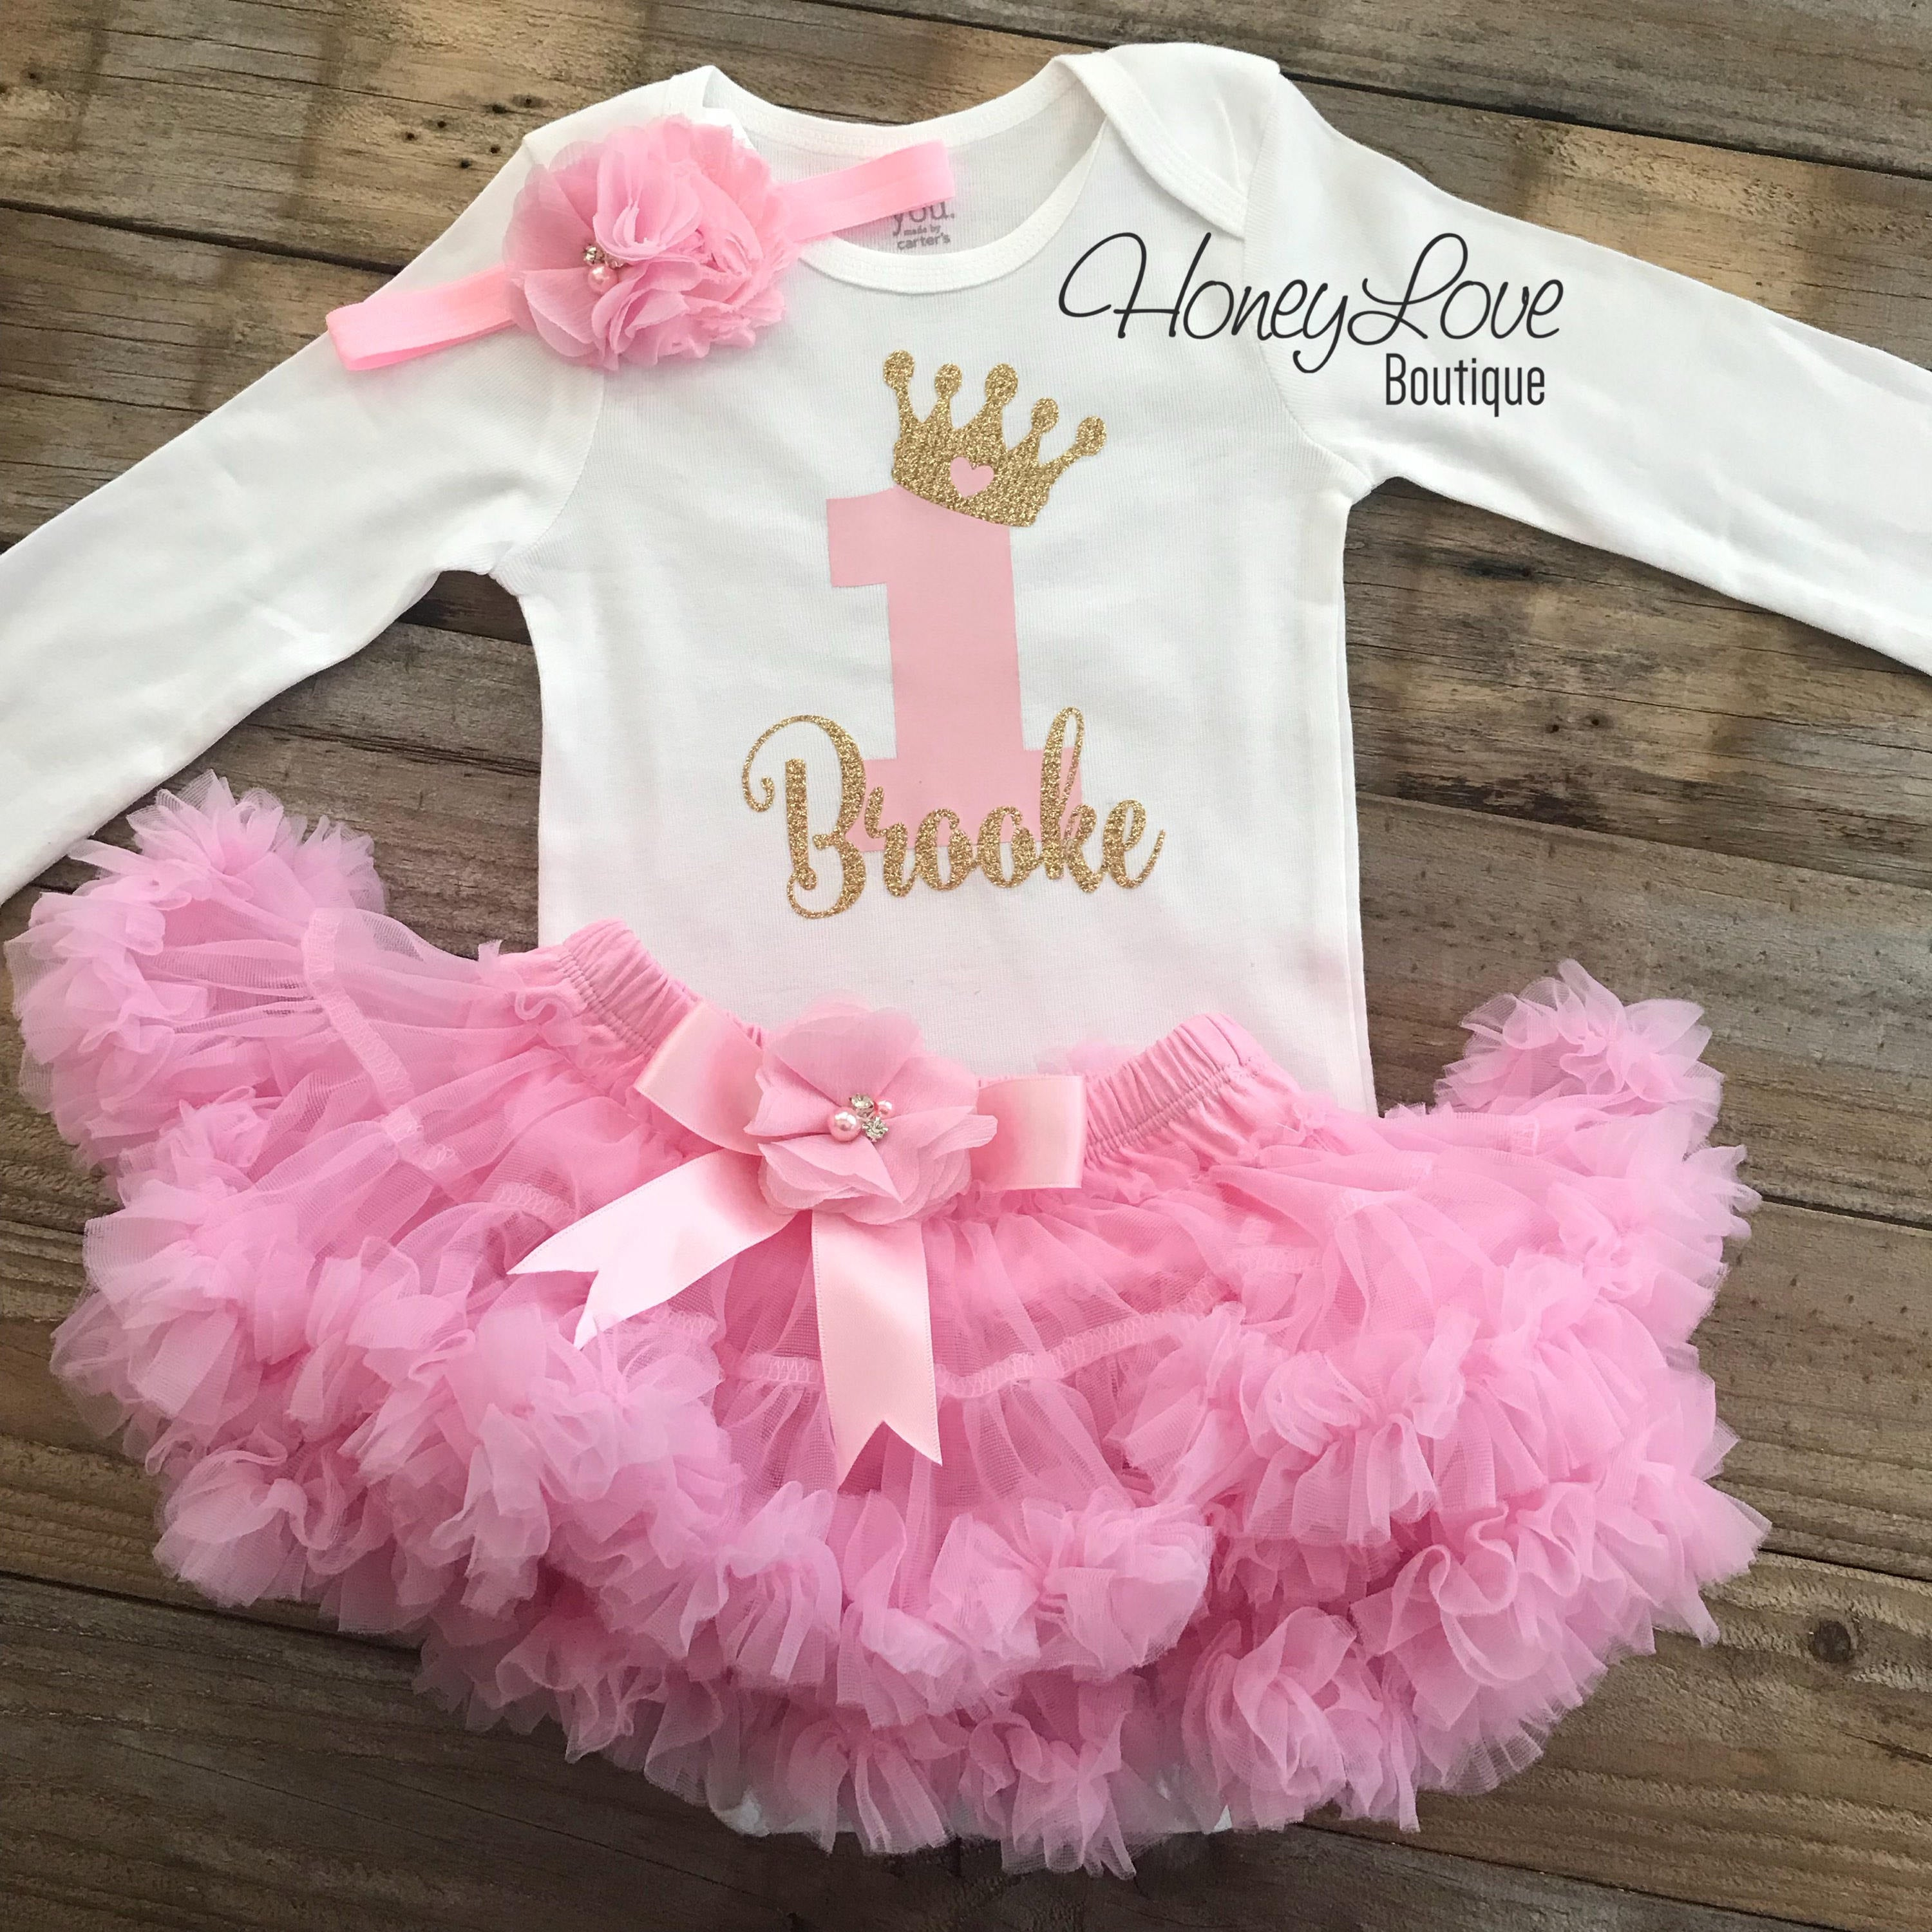 6145ff0e258ba ... Personalized 1st Birthday Princess outfit - Light Pink and Gold Glitter  - embellished pettiskirt - HoneyLoveBoutique ...